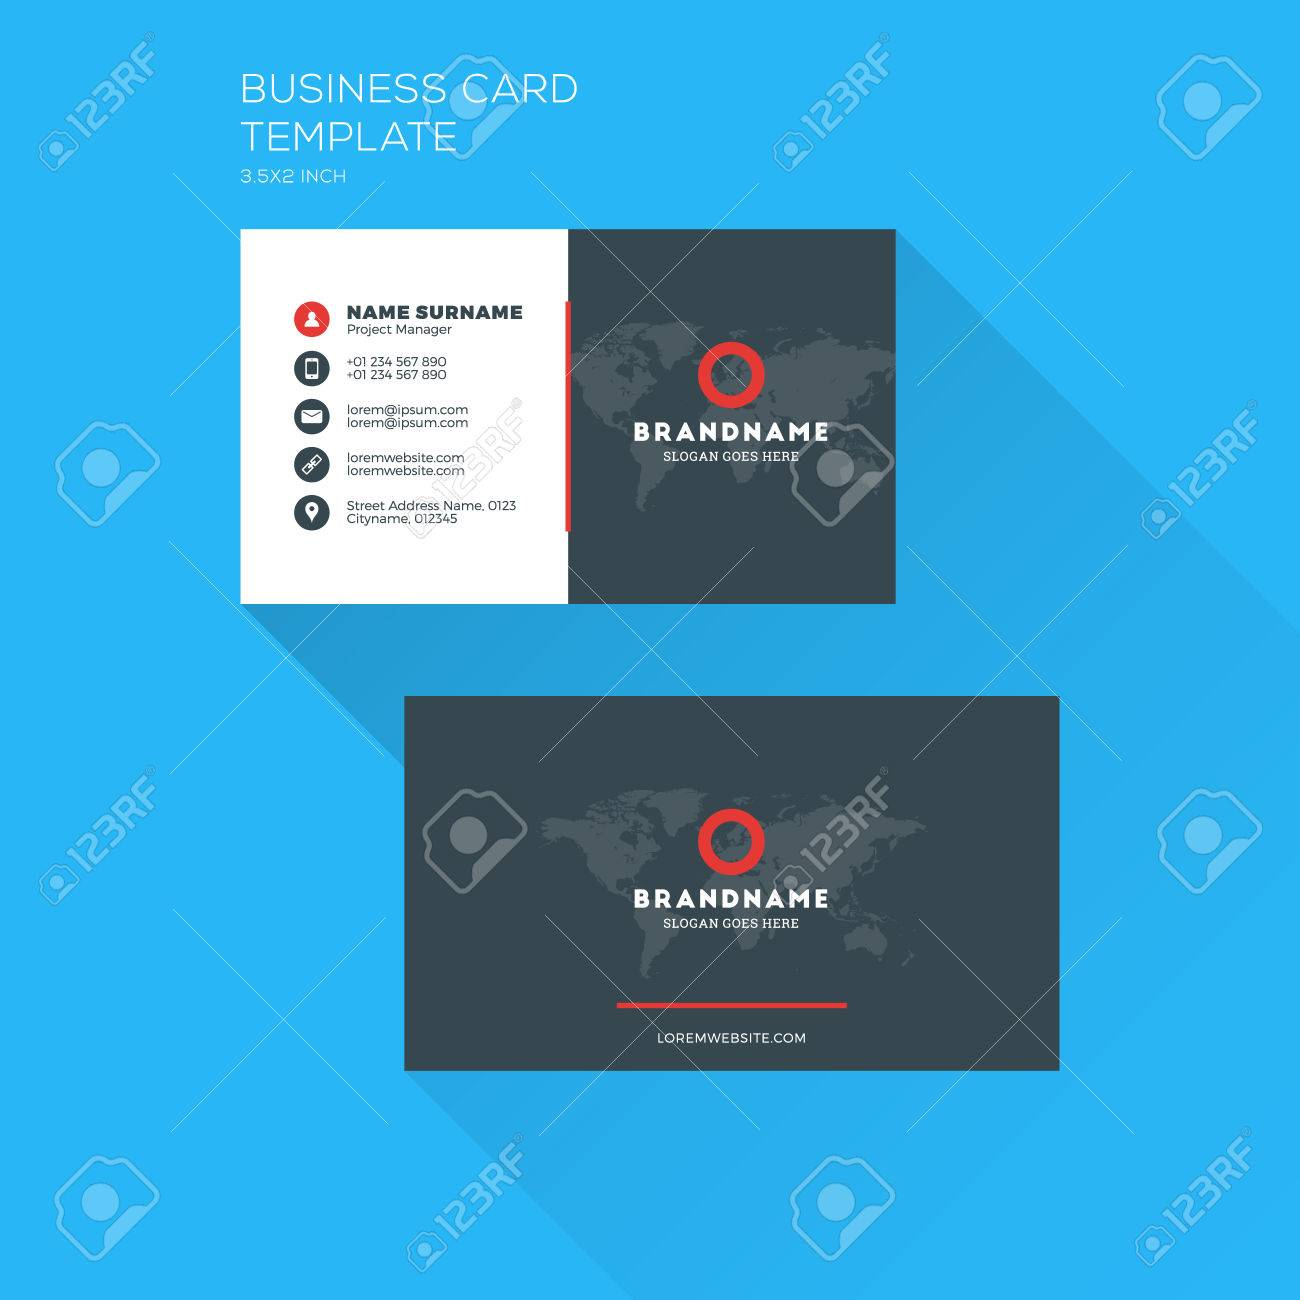 Corporate business card print template personal visiting card corporate business card print template personal visiting card with company clean flat design flashek Choice Image